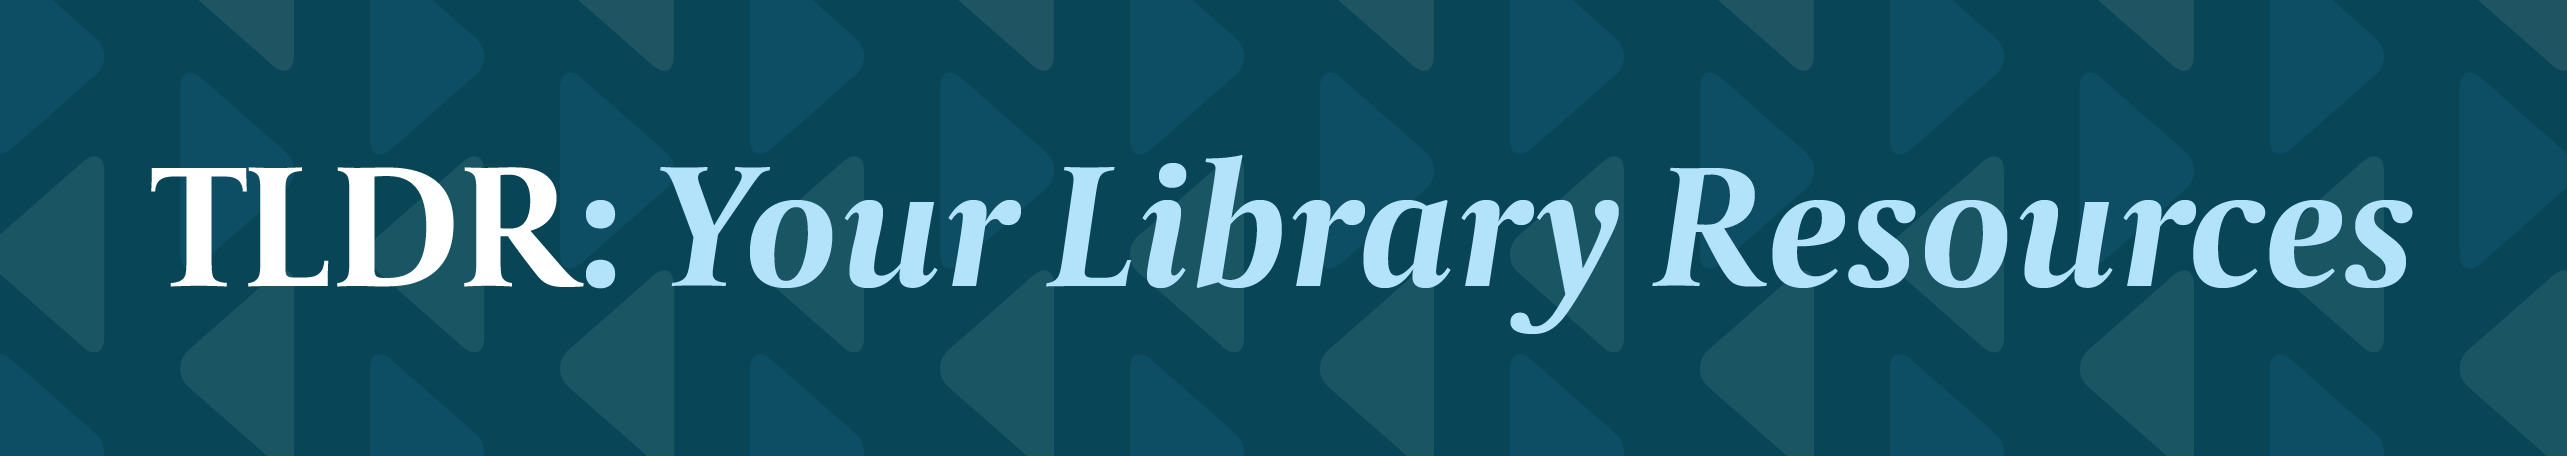 TLDR Your Library Resources